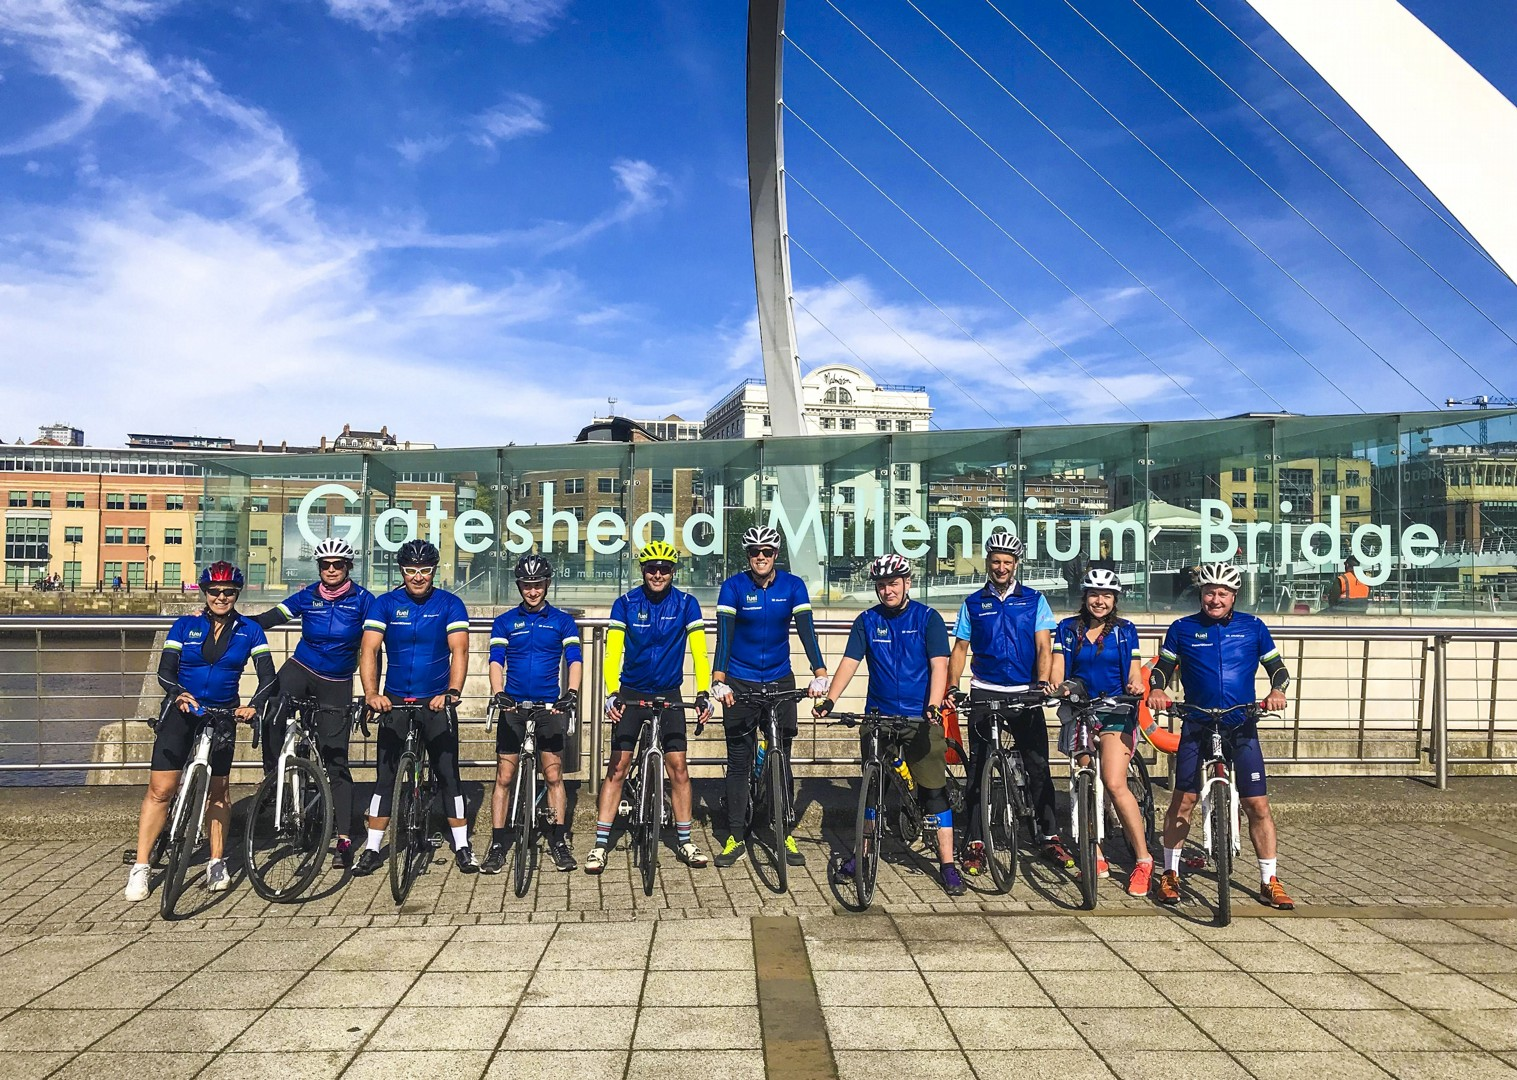 newcastle-cycling-tour-from-whitehaven-self-guided-3-days.jpg - UK - C2C - Coast to Coast 3 Days Cycling - Self-Guided Leisure Cycling Holiday - Leisure Cycling